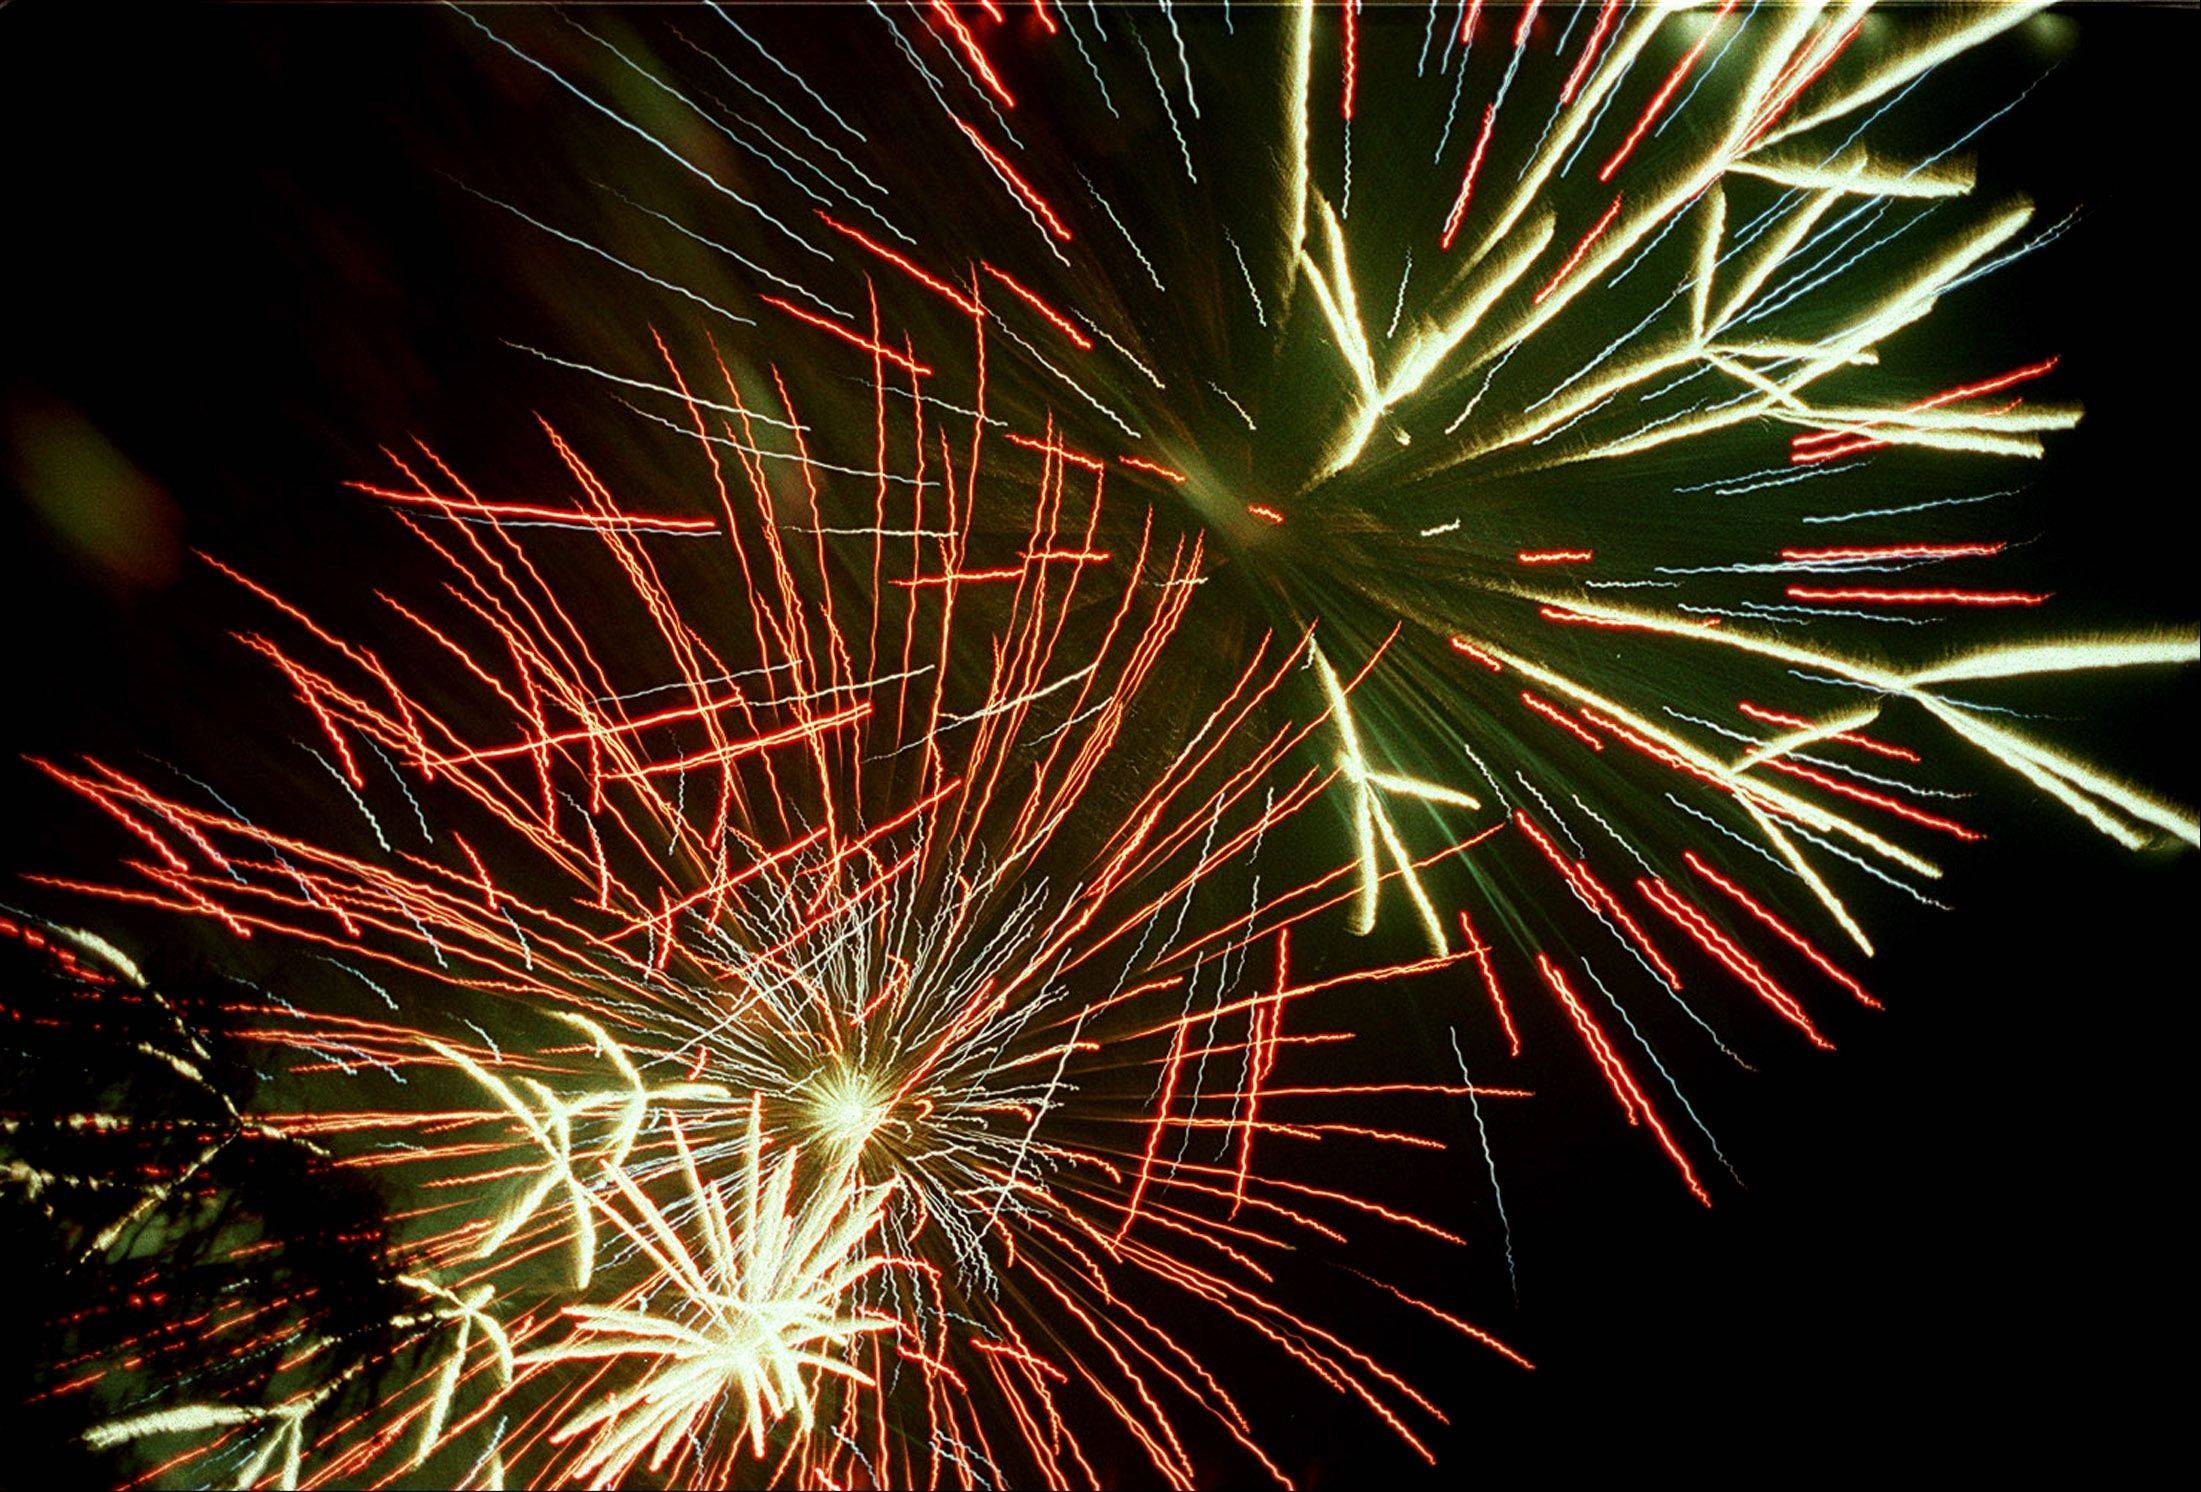 Where to find the best fireworks in the suburbs